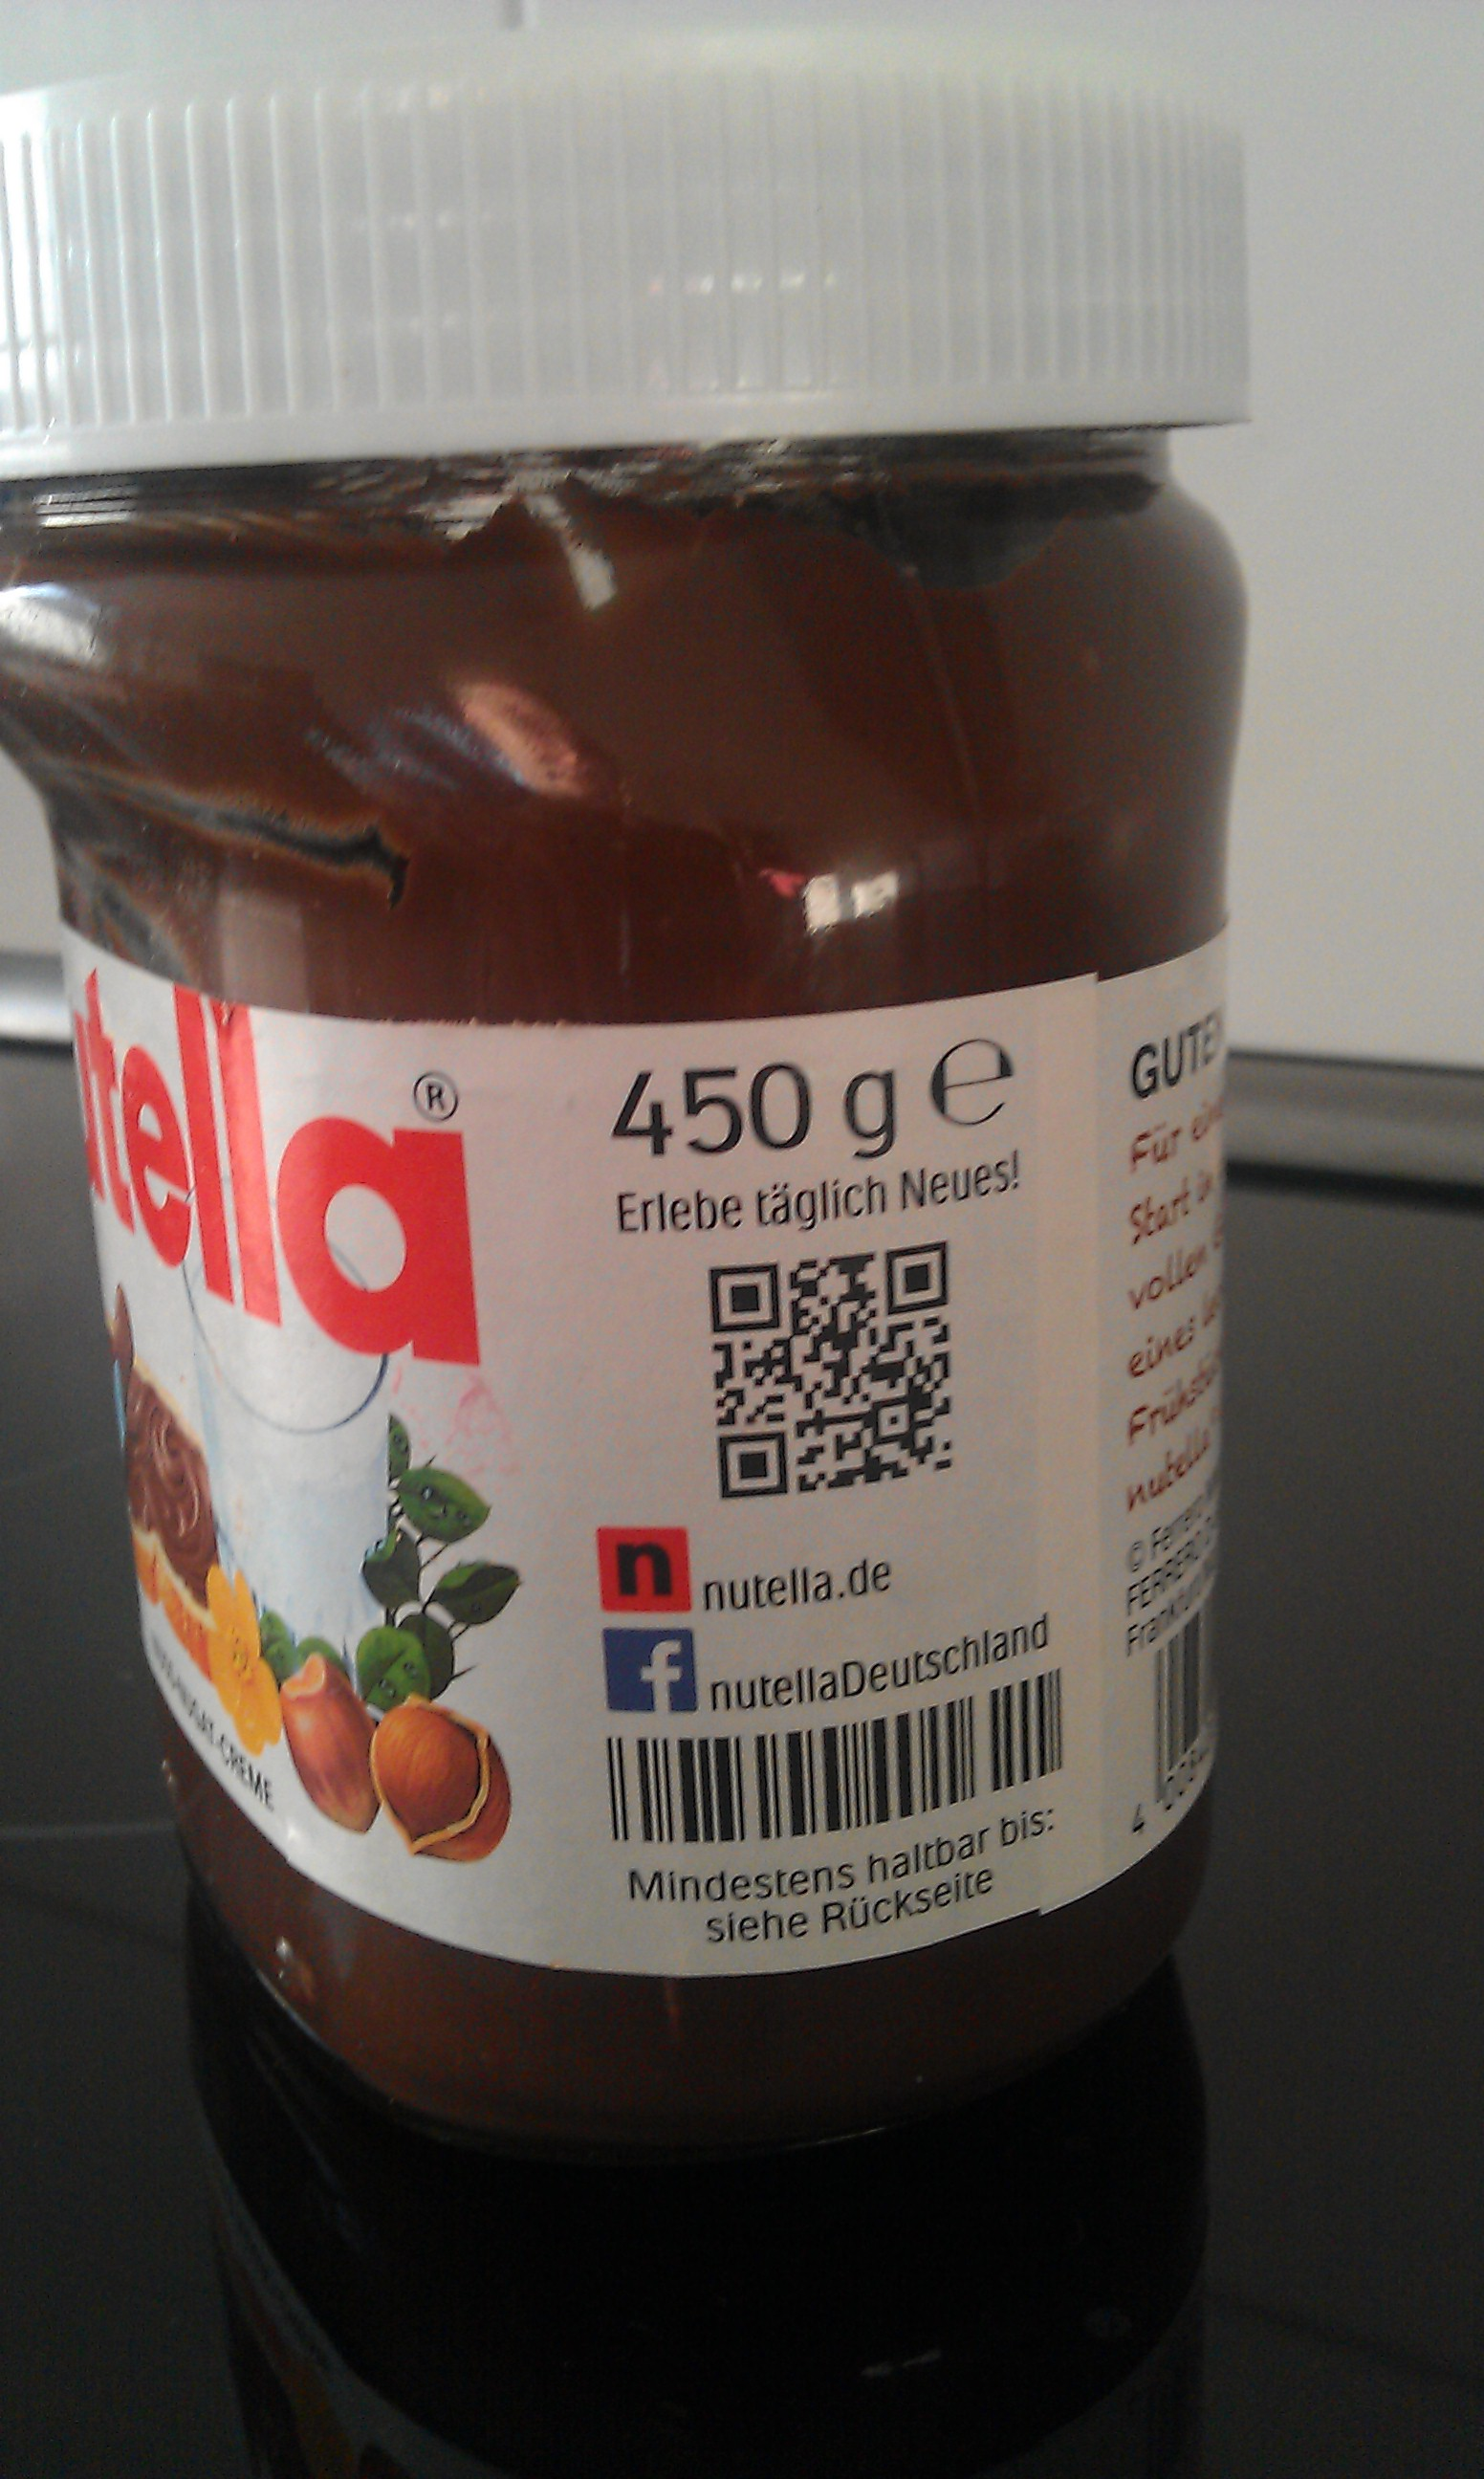 qr code ein witz bei nutella schon bluhm systeme blog. Black Bedroom Furniture Sets. Home Design Ideas